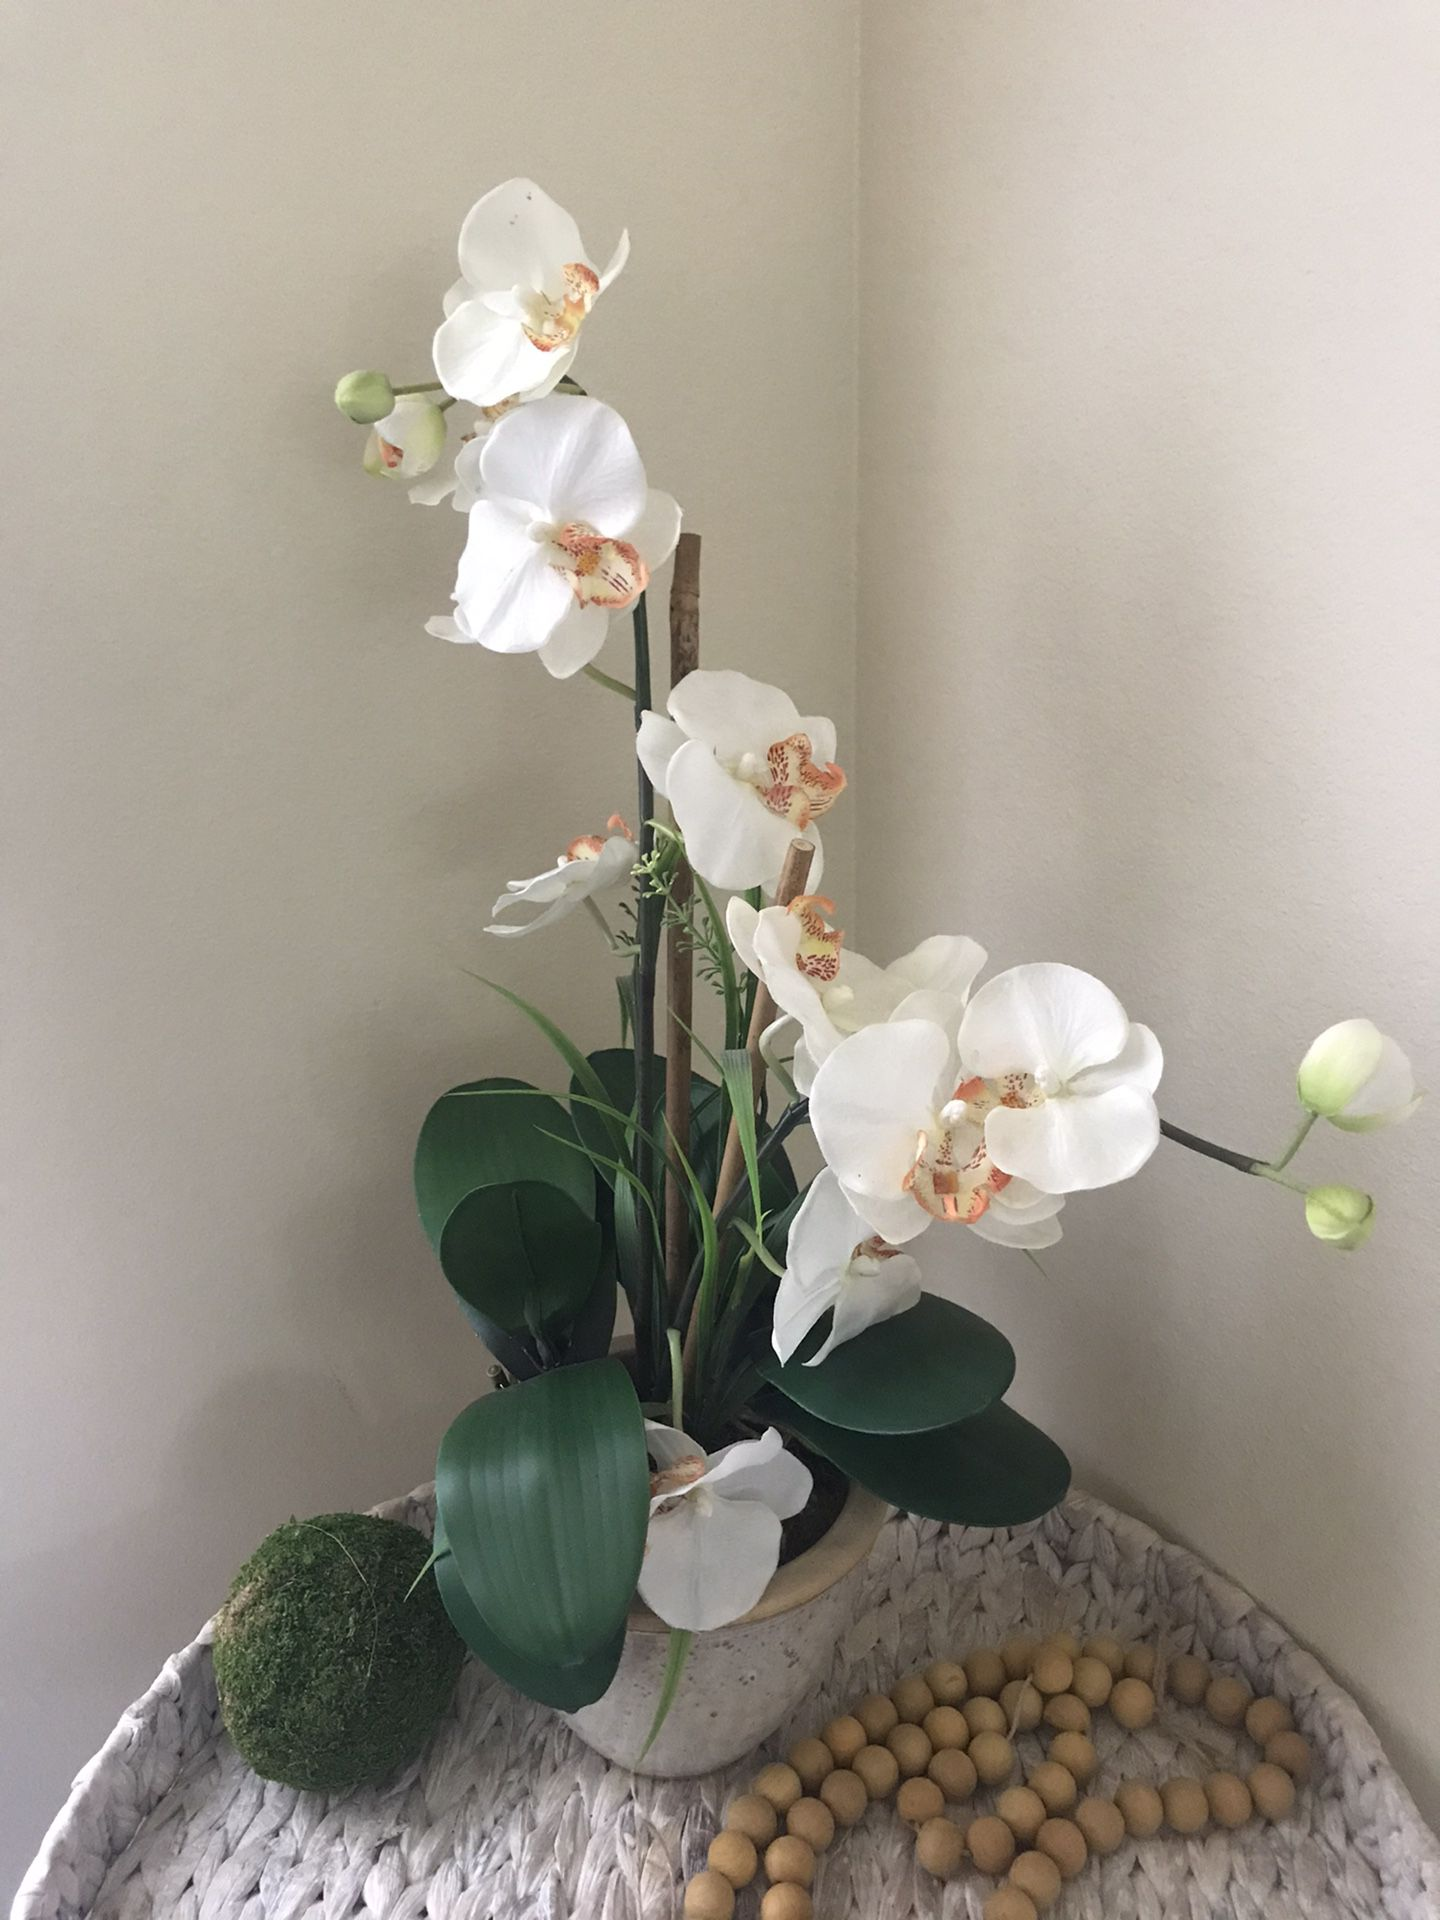 Orchid Decor With The Base